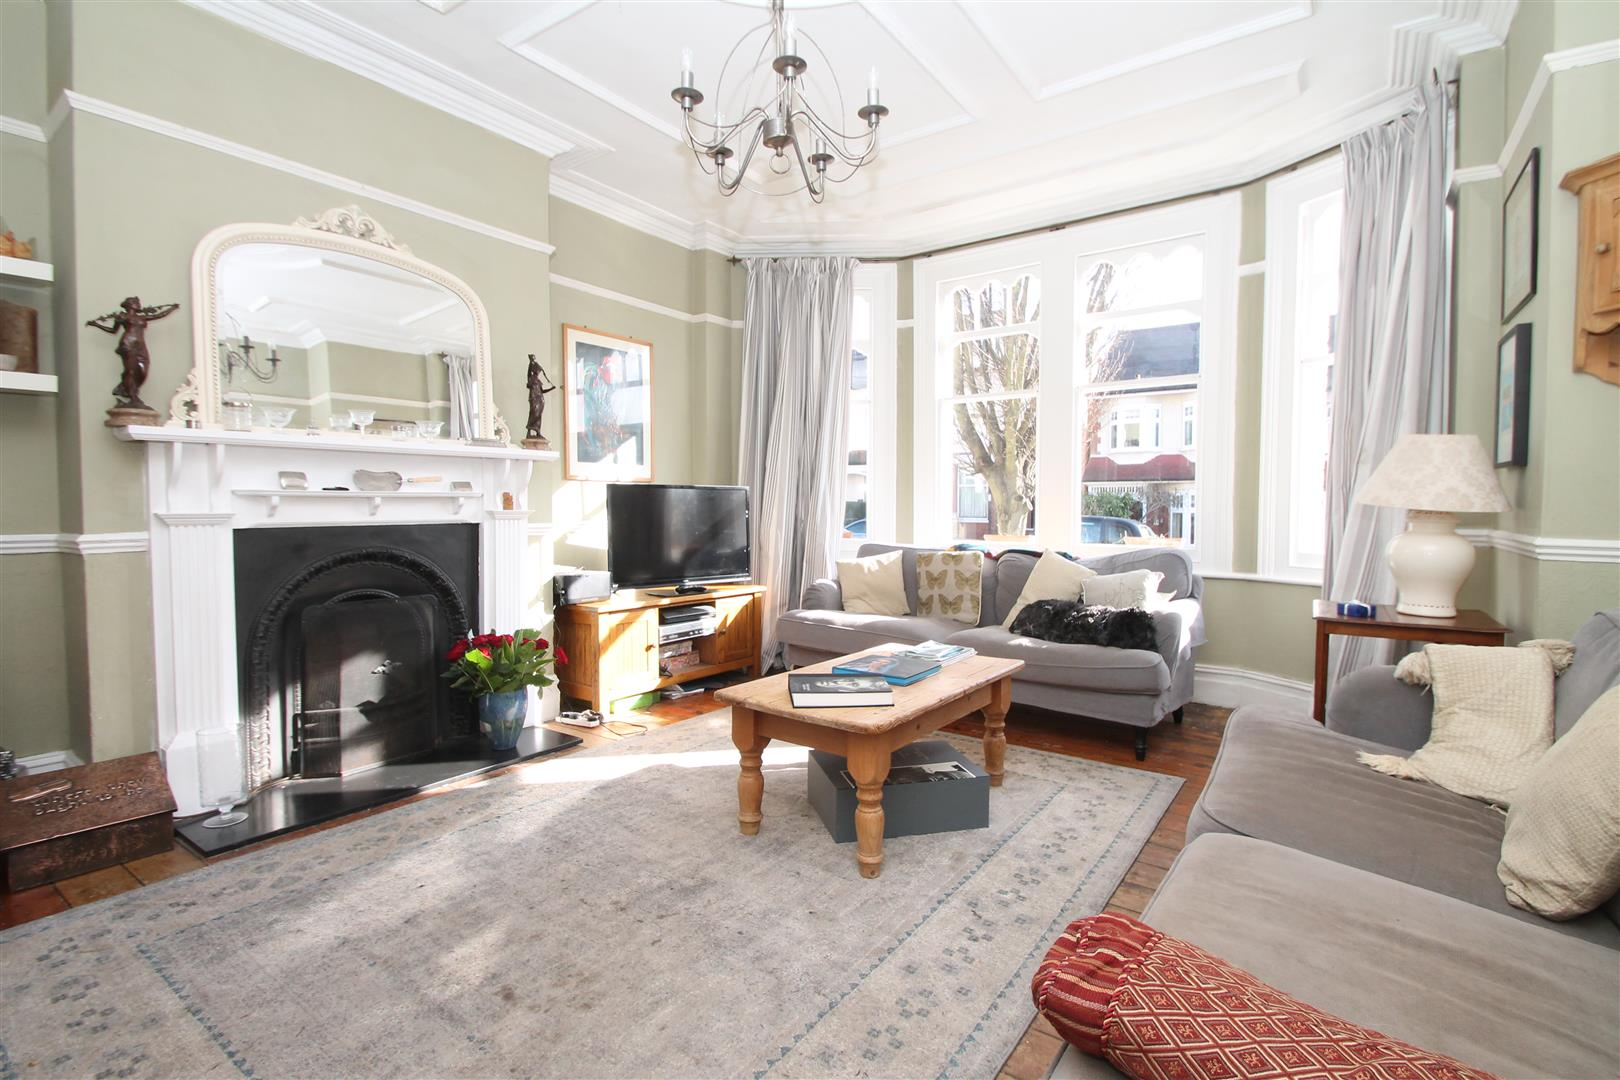 3 Bedrooms House for sale in Belmont Avenue, London